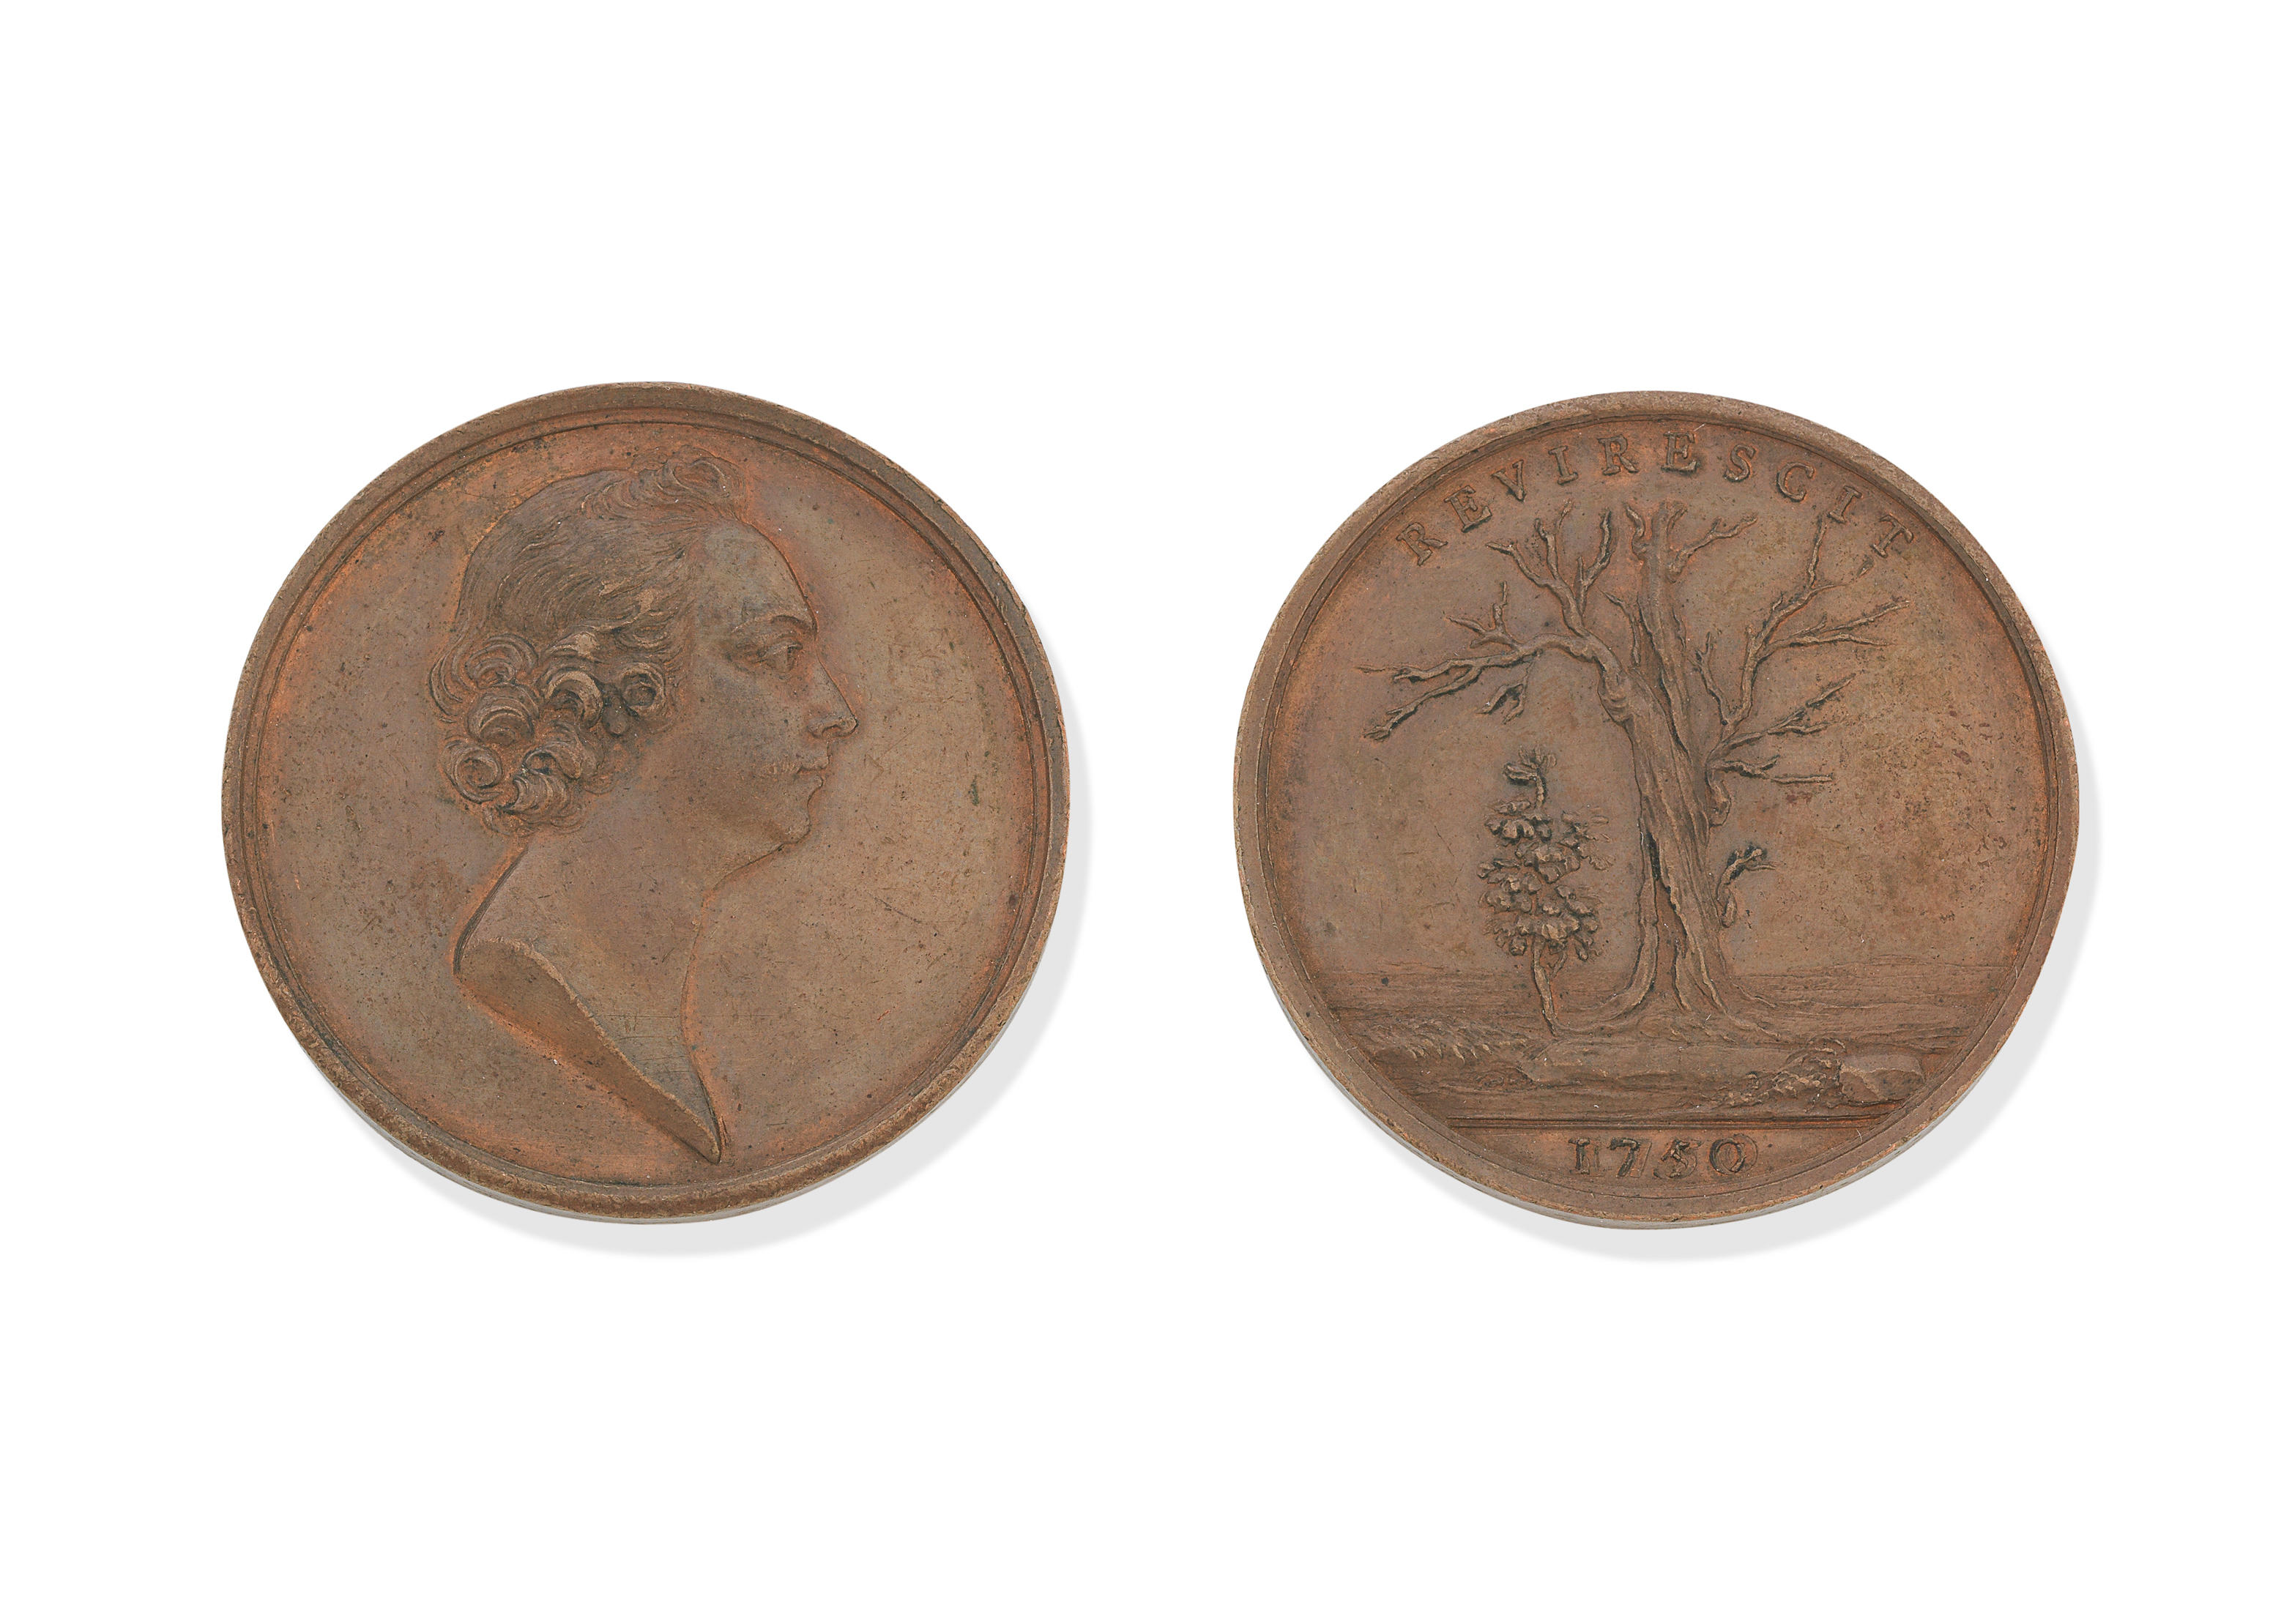 Of Jacobite interest: A Copper Charles Edward Stuart Oak Society Medallion...